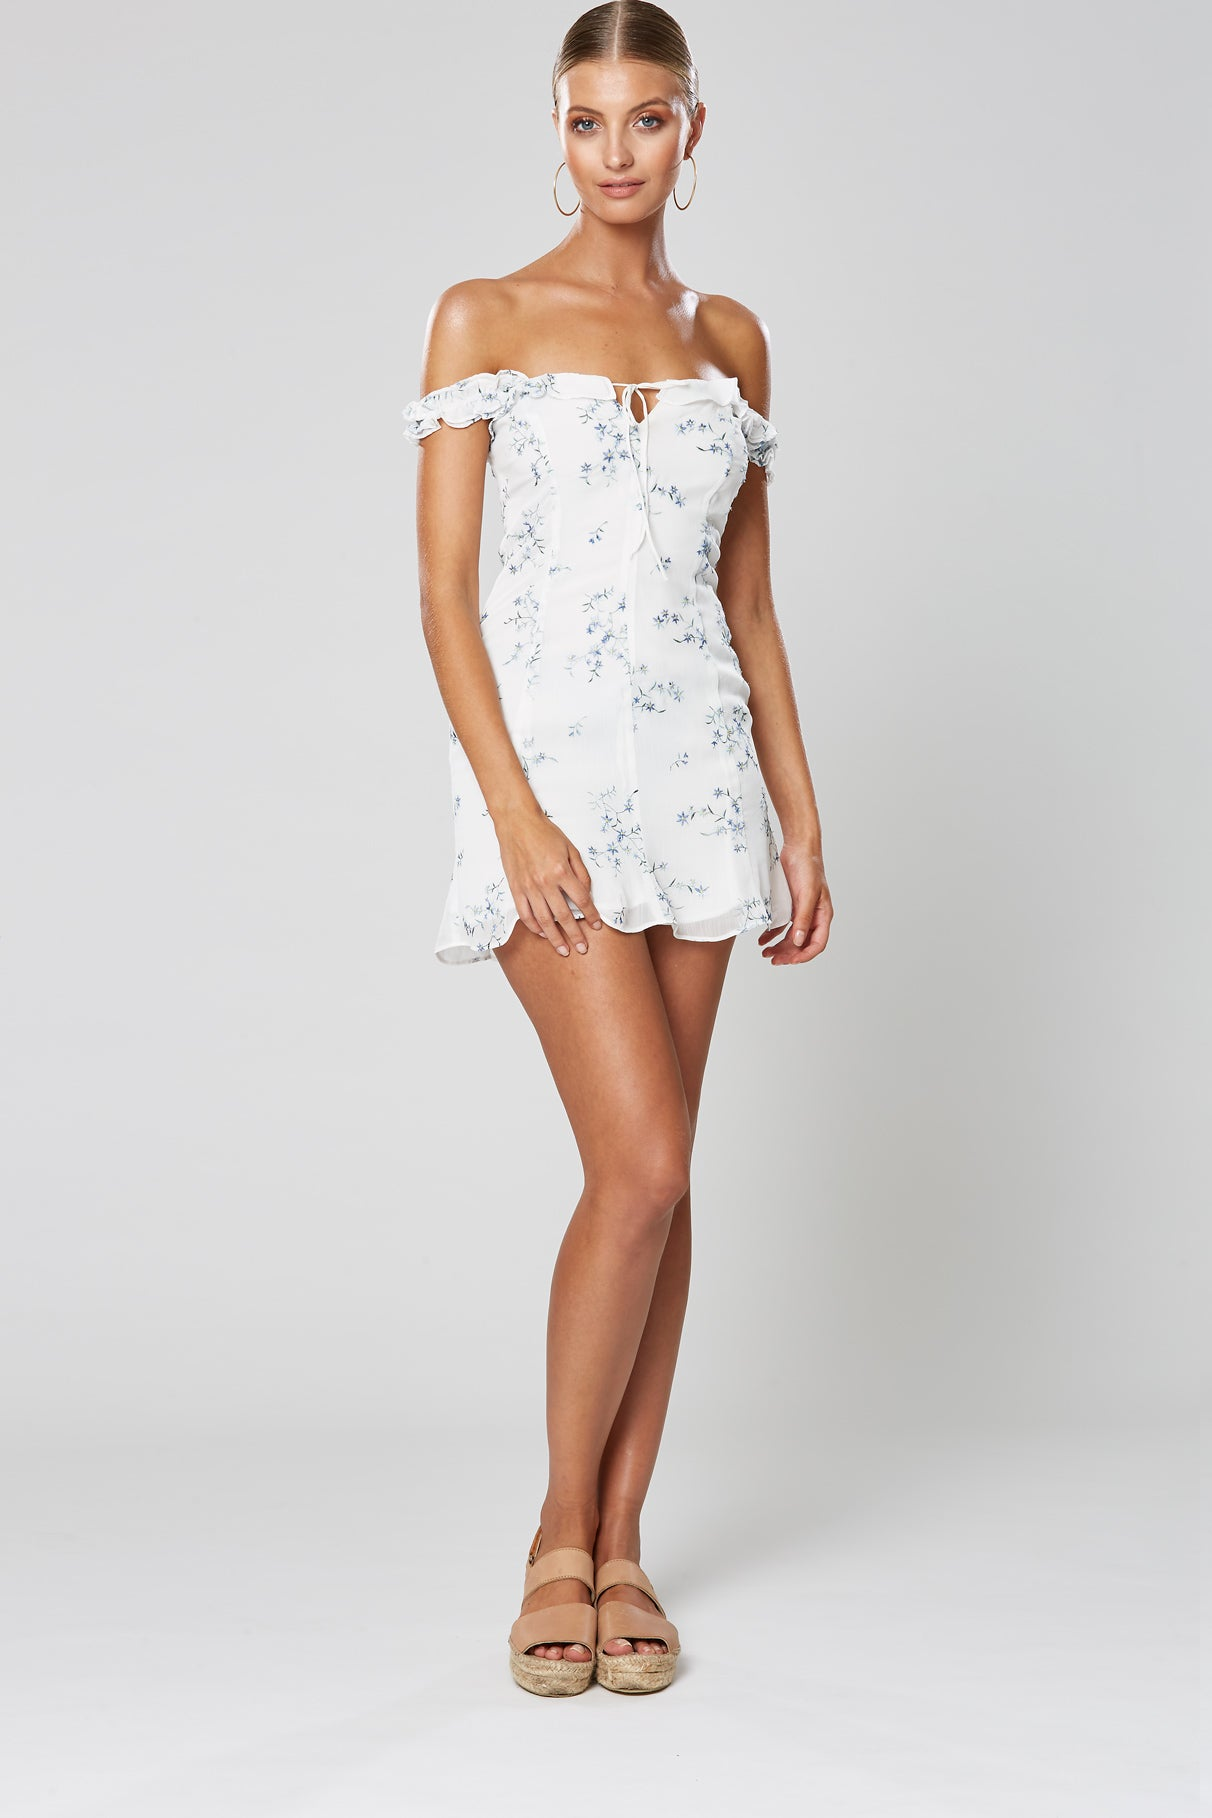 SOUL MATE MINI DRESS